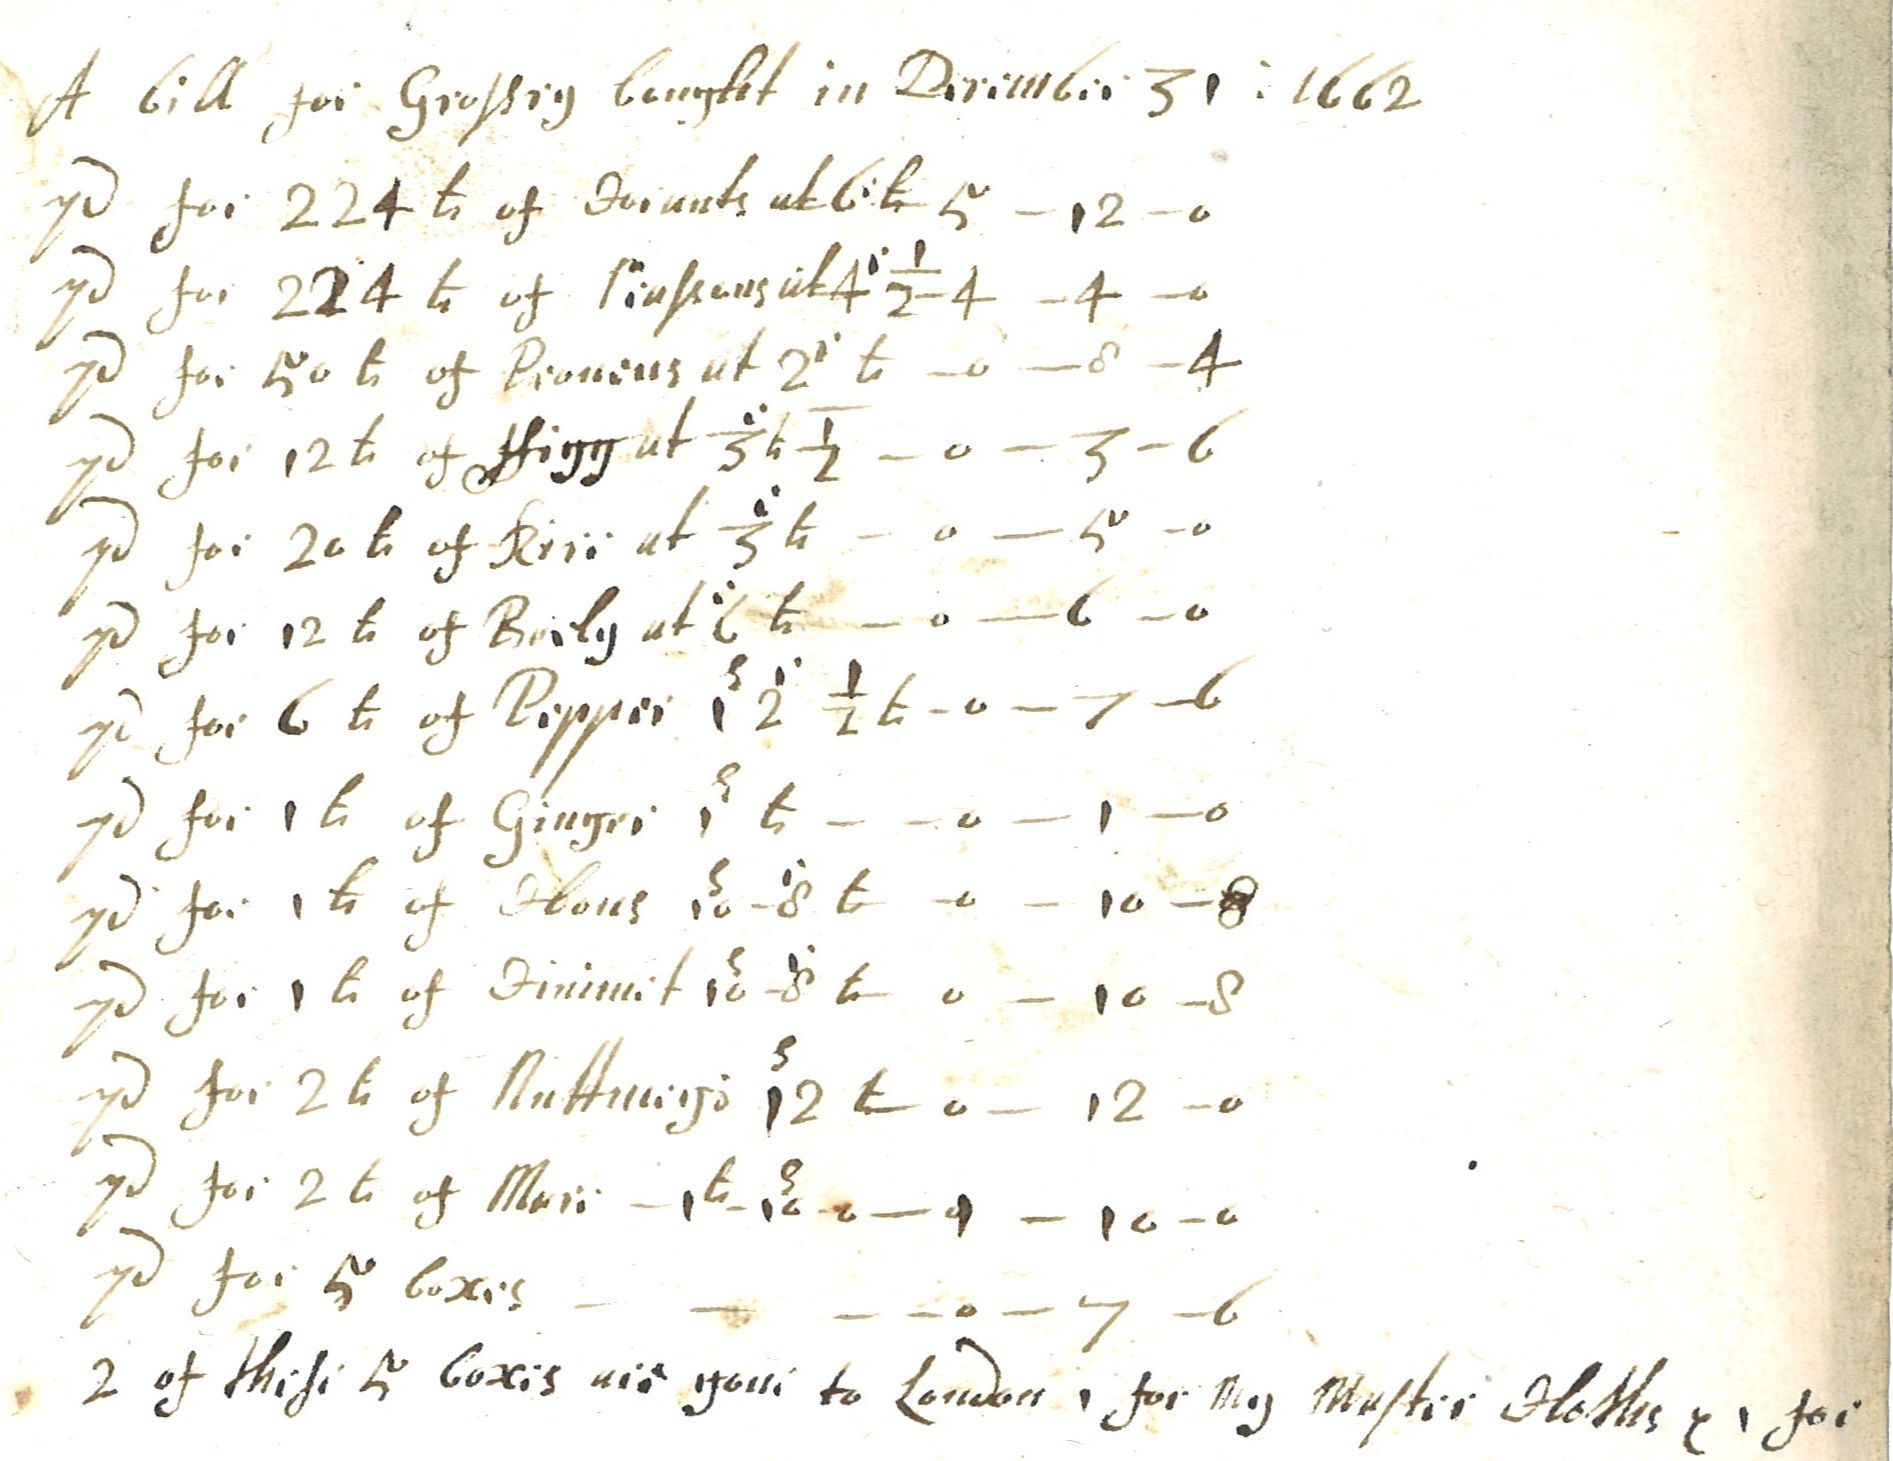 Wonder how similar your Christmas shopping list looks to this one for Christmas at Lydiard House in 1662? It includes currants, raisins, prunes, figs, rice, barley, spices and various kinds of wines and spirits.